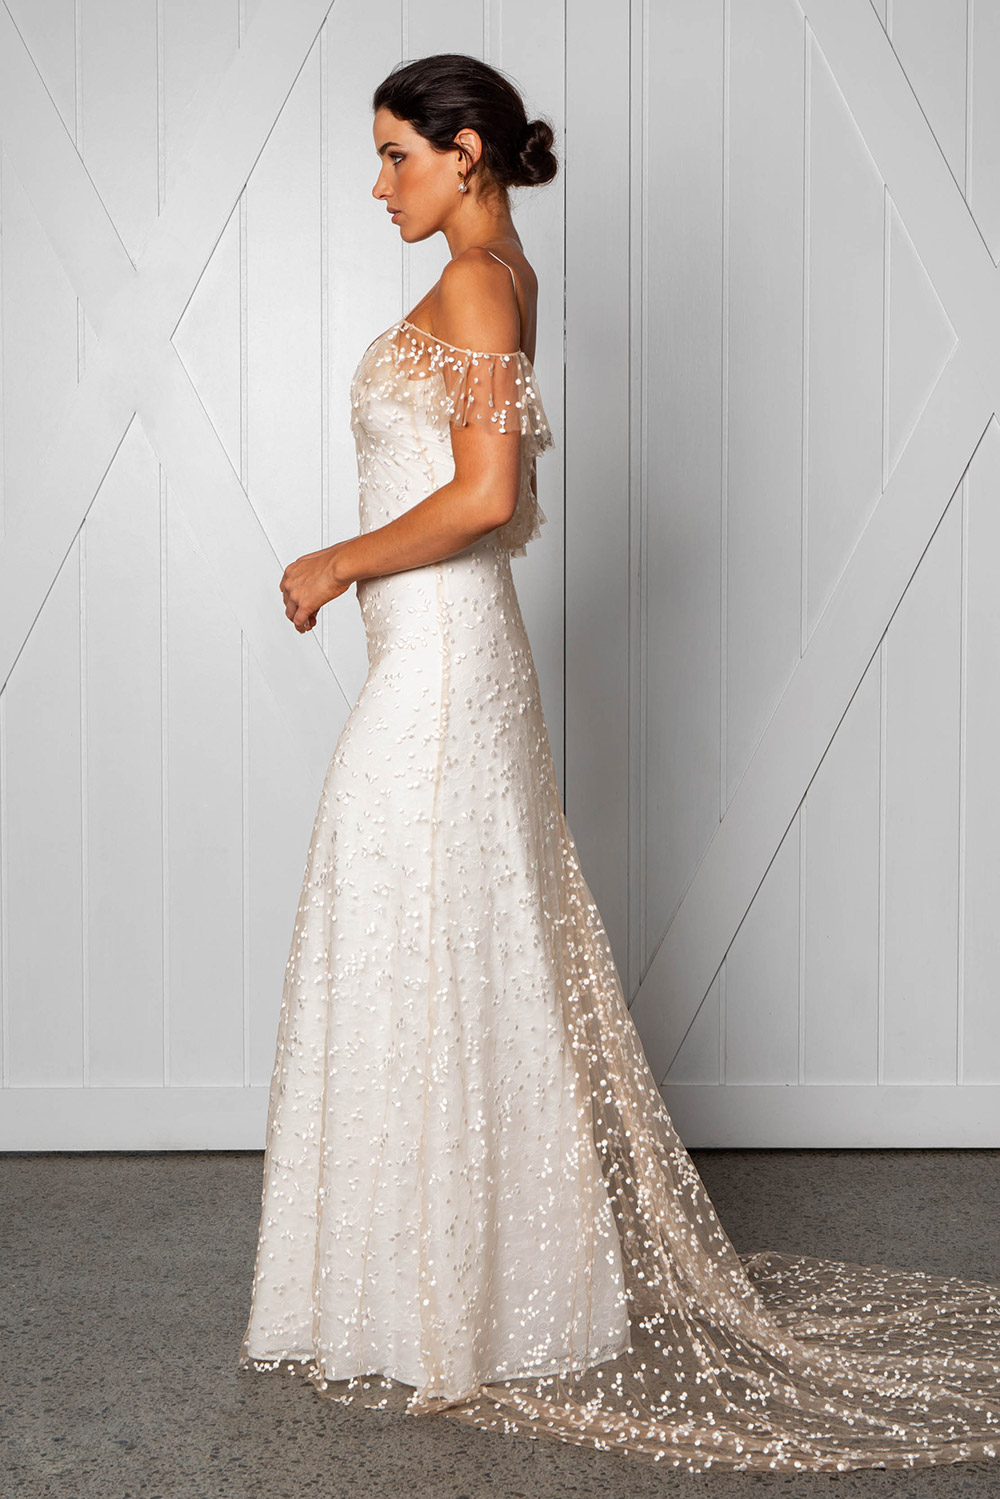 Marloe - Grace Loves Lace 2018 Bridal Collection. www.theweddingnotebook.com